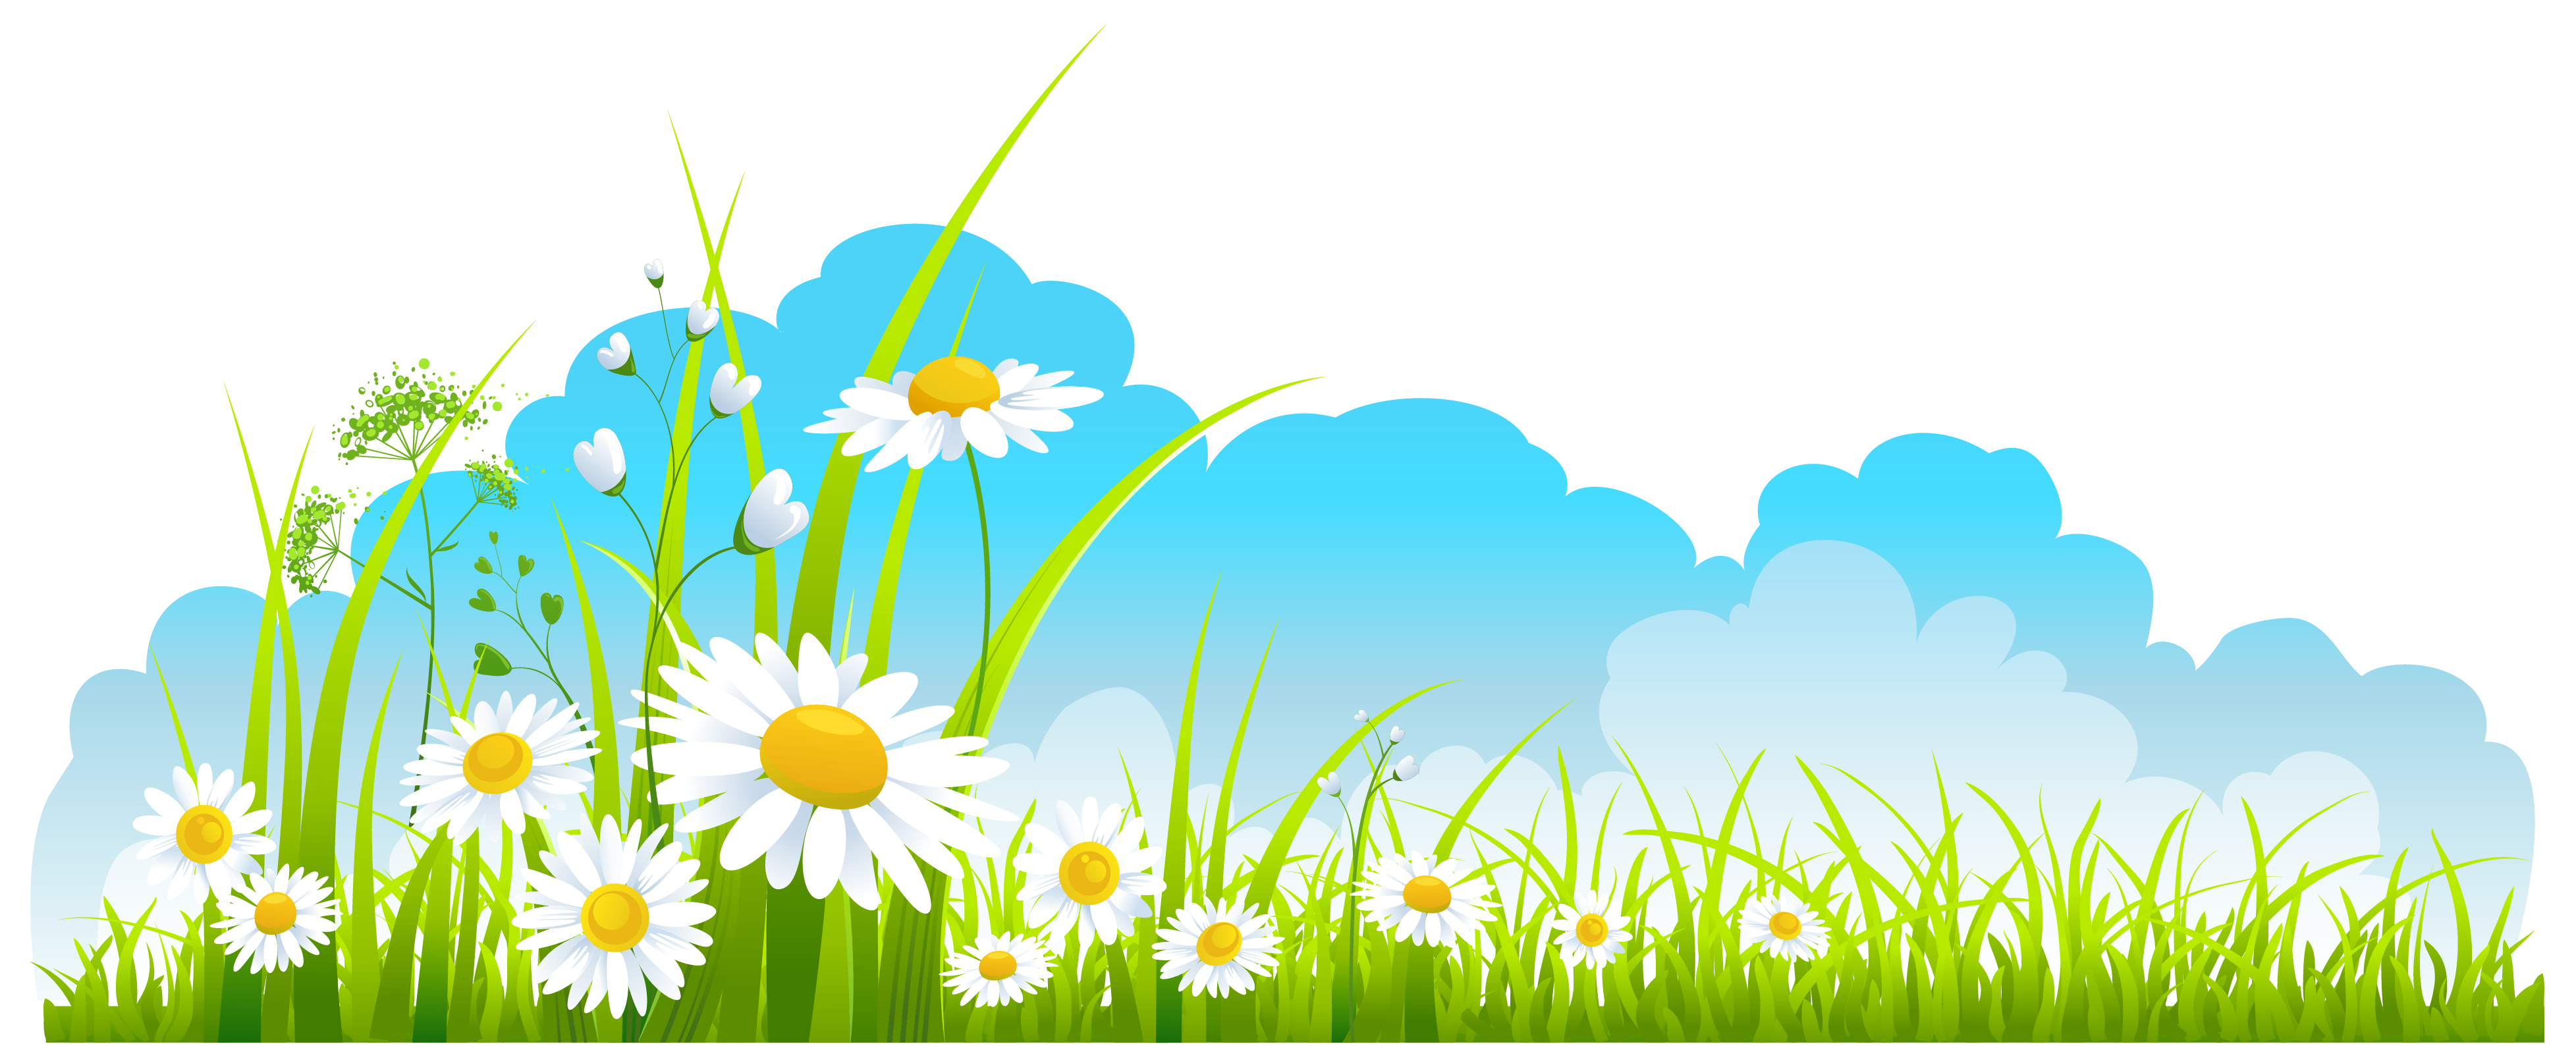 Sky clipart clear sky. Collection of flower